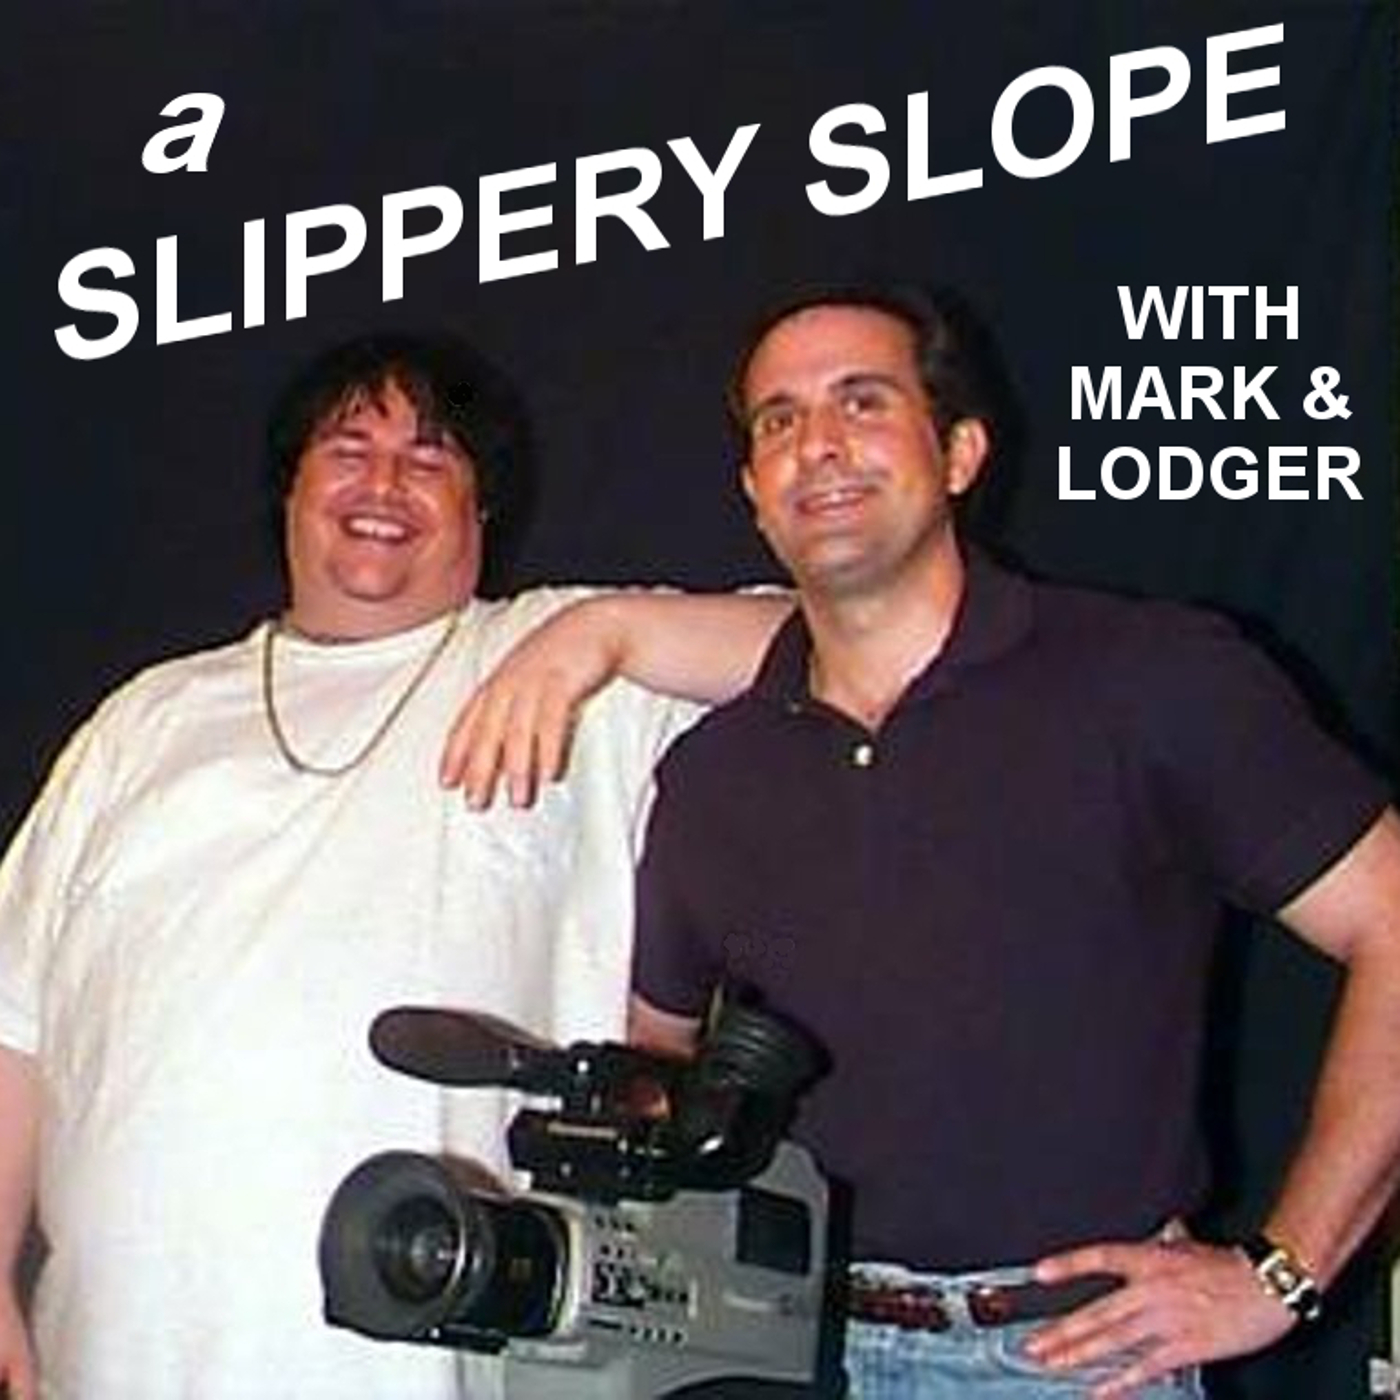 A Slippery Slope Album Cover